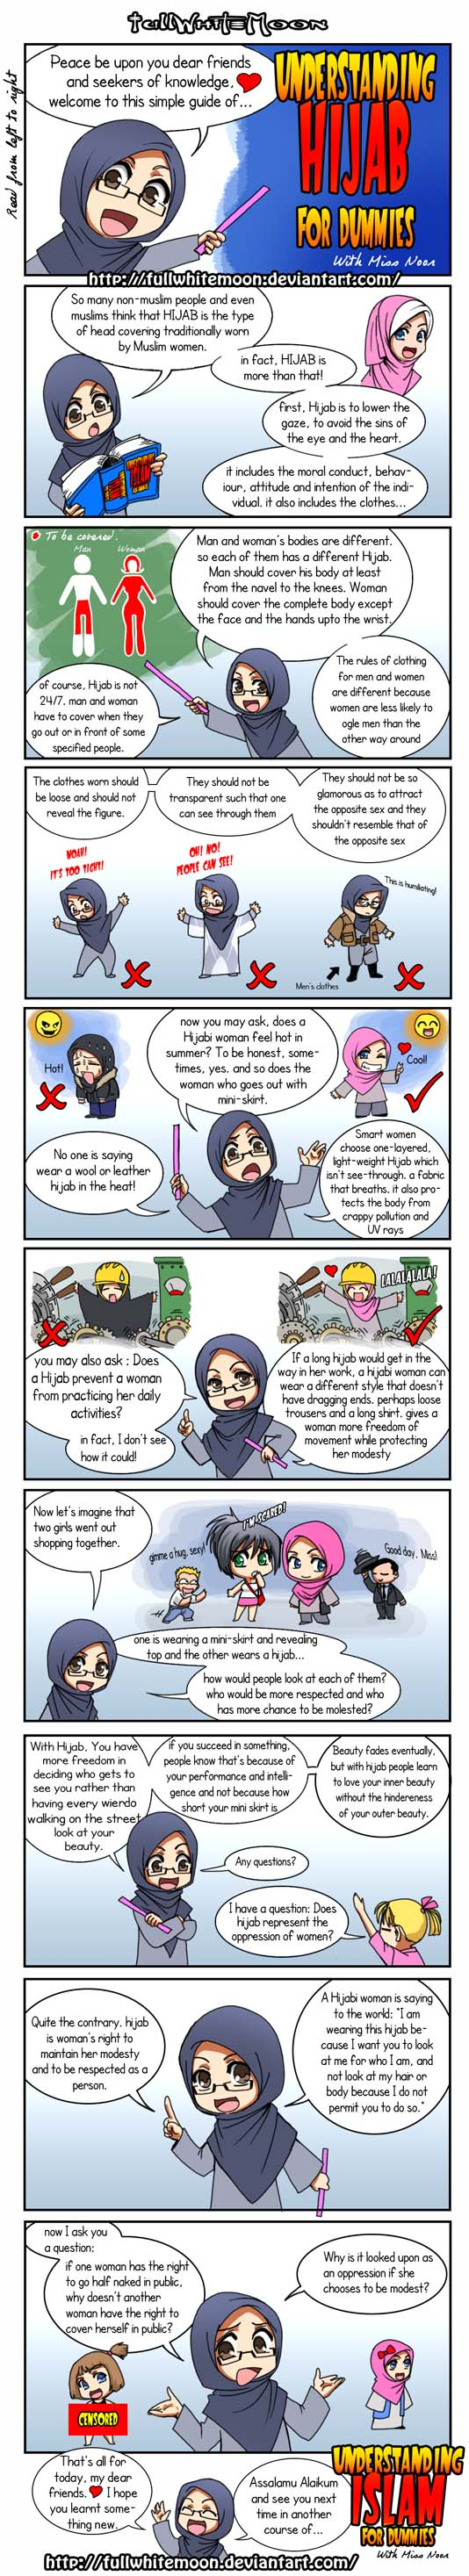 Hijab Meme,Hijab,Hijabi meme,hijab funny,parda,woman,women,modest hijab,modesty,modesty of hijab,understand the hijab,citizen khan meme,citizen khan